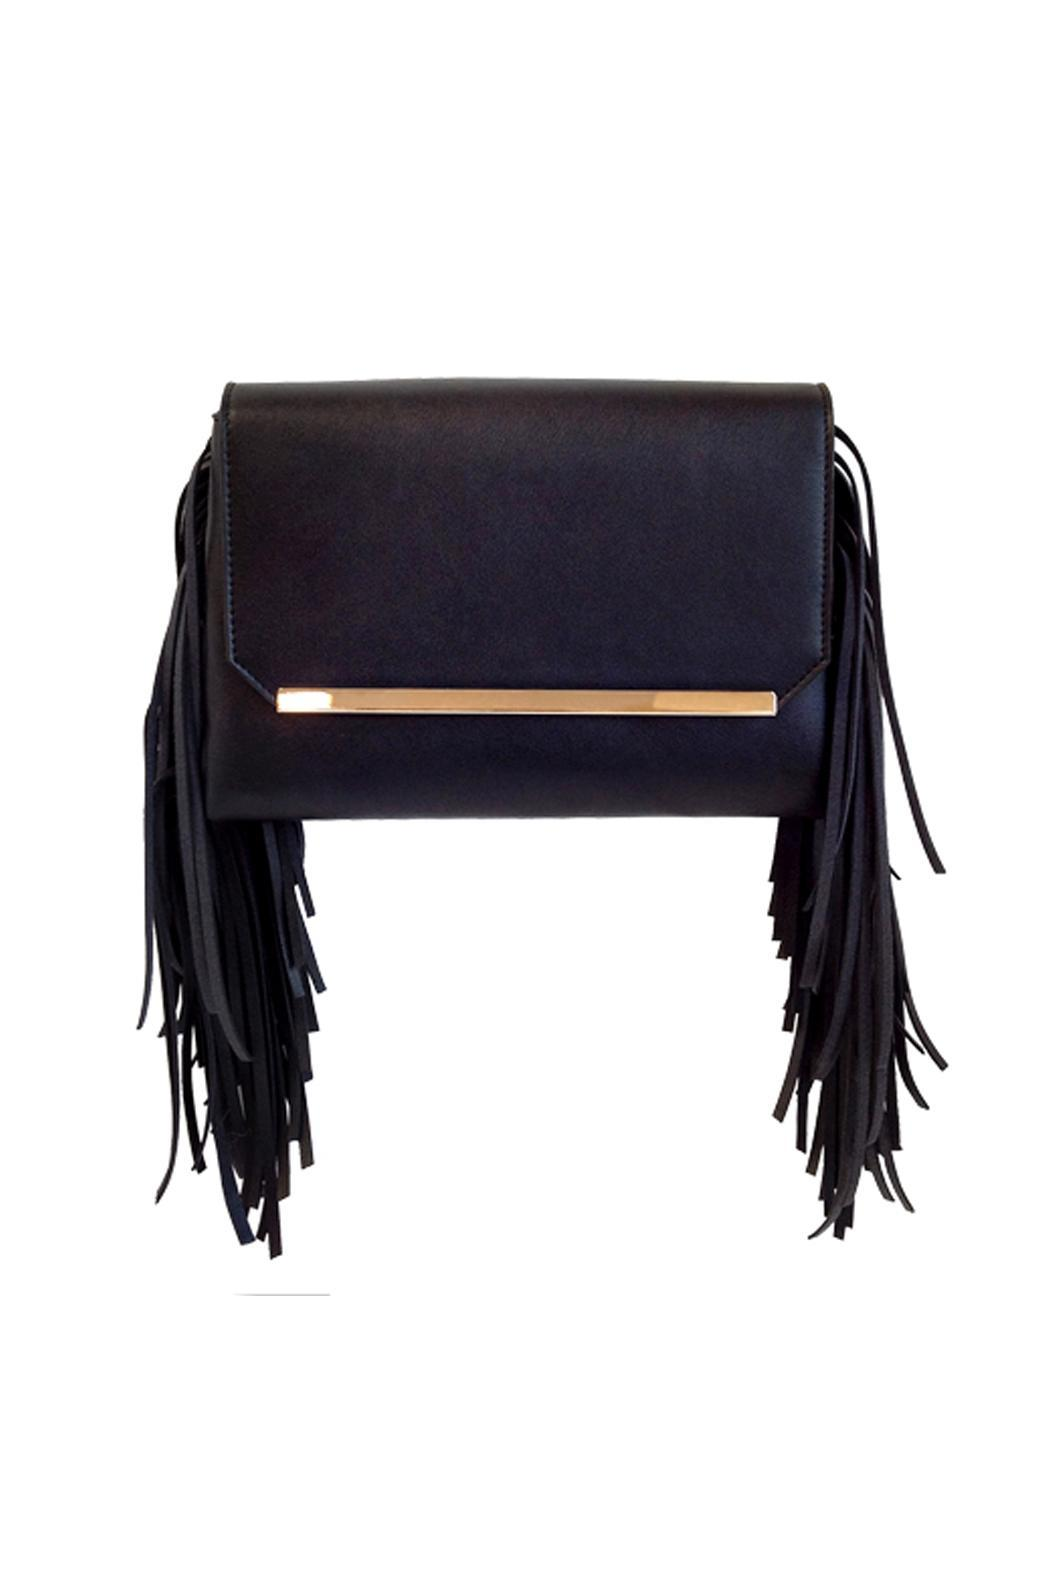 Wild Lilies Jewelry  Black Fringe Clutch - Front Cropped Image